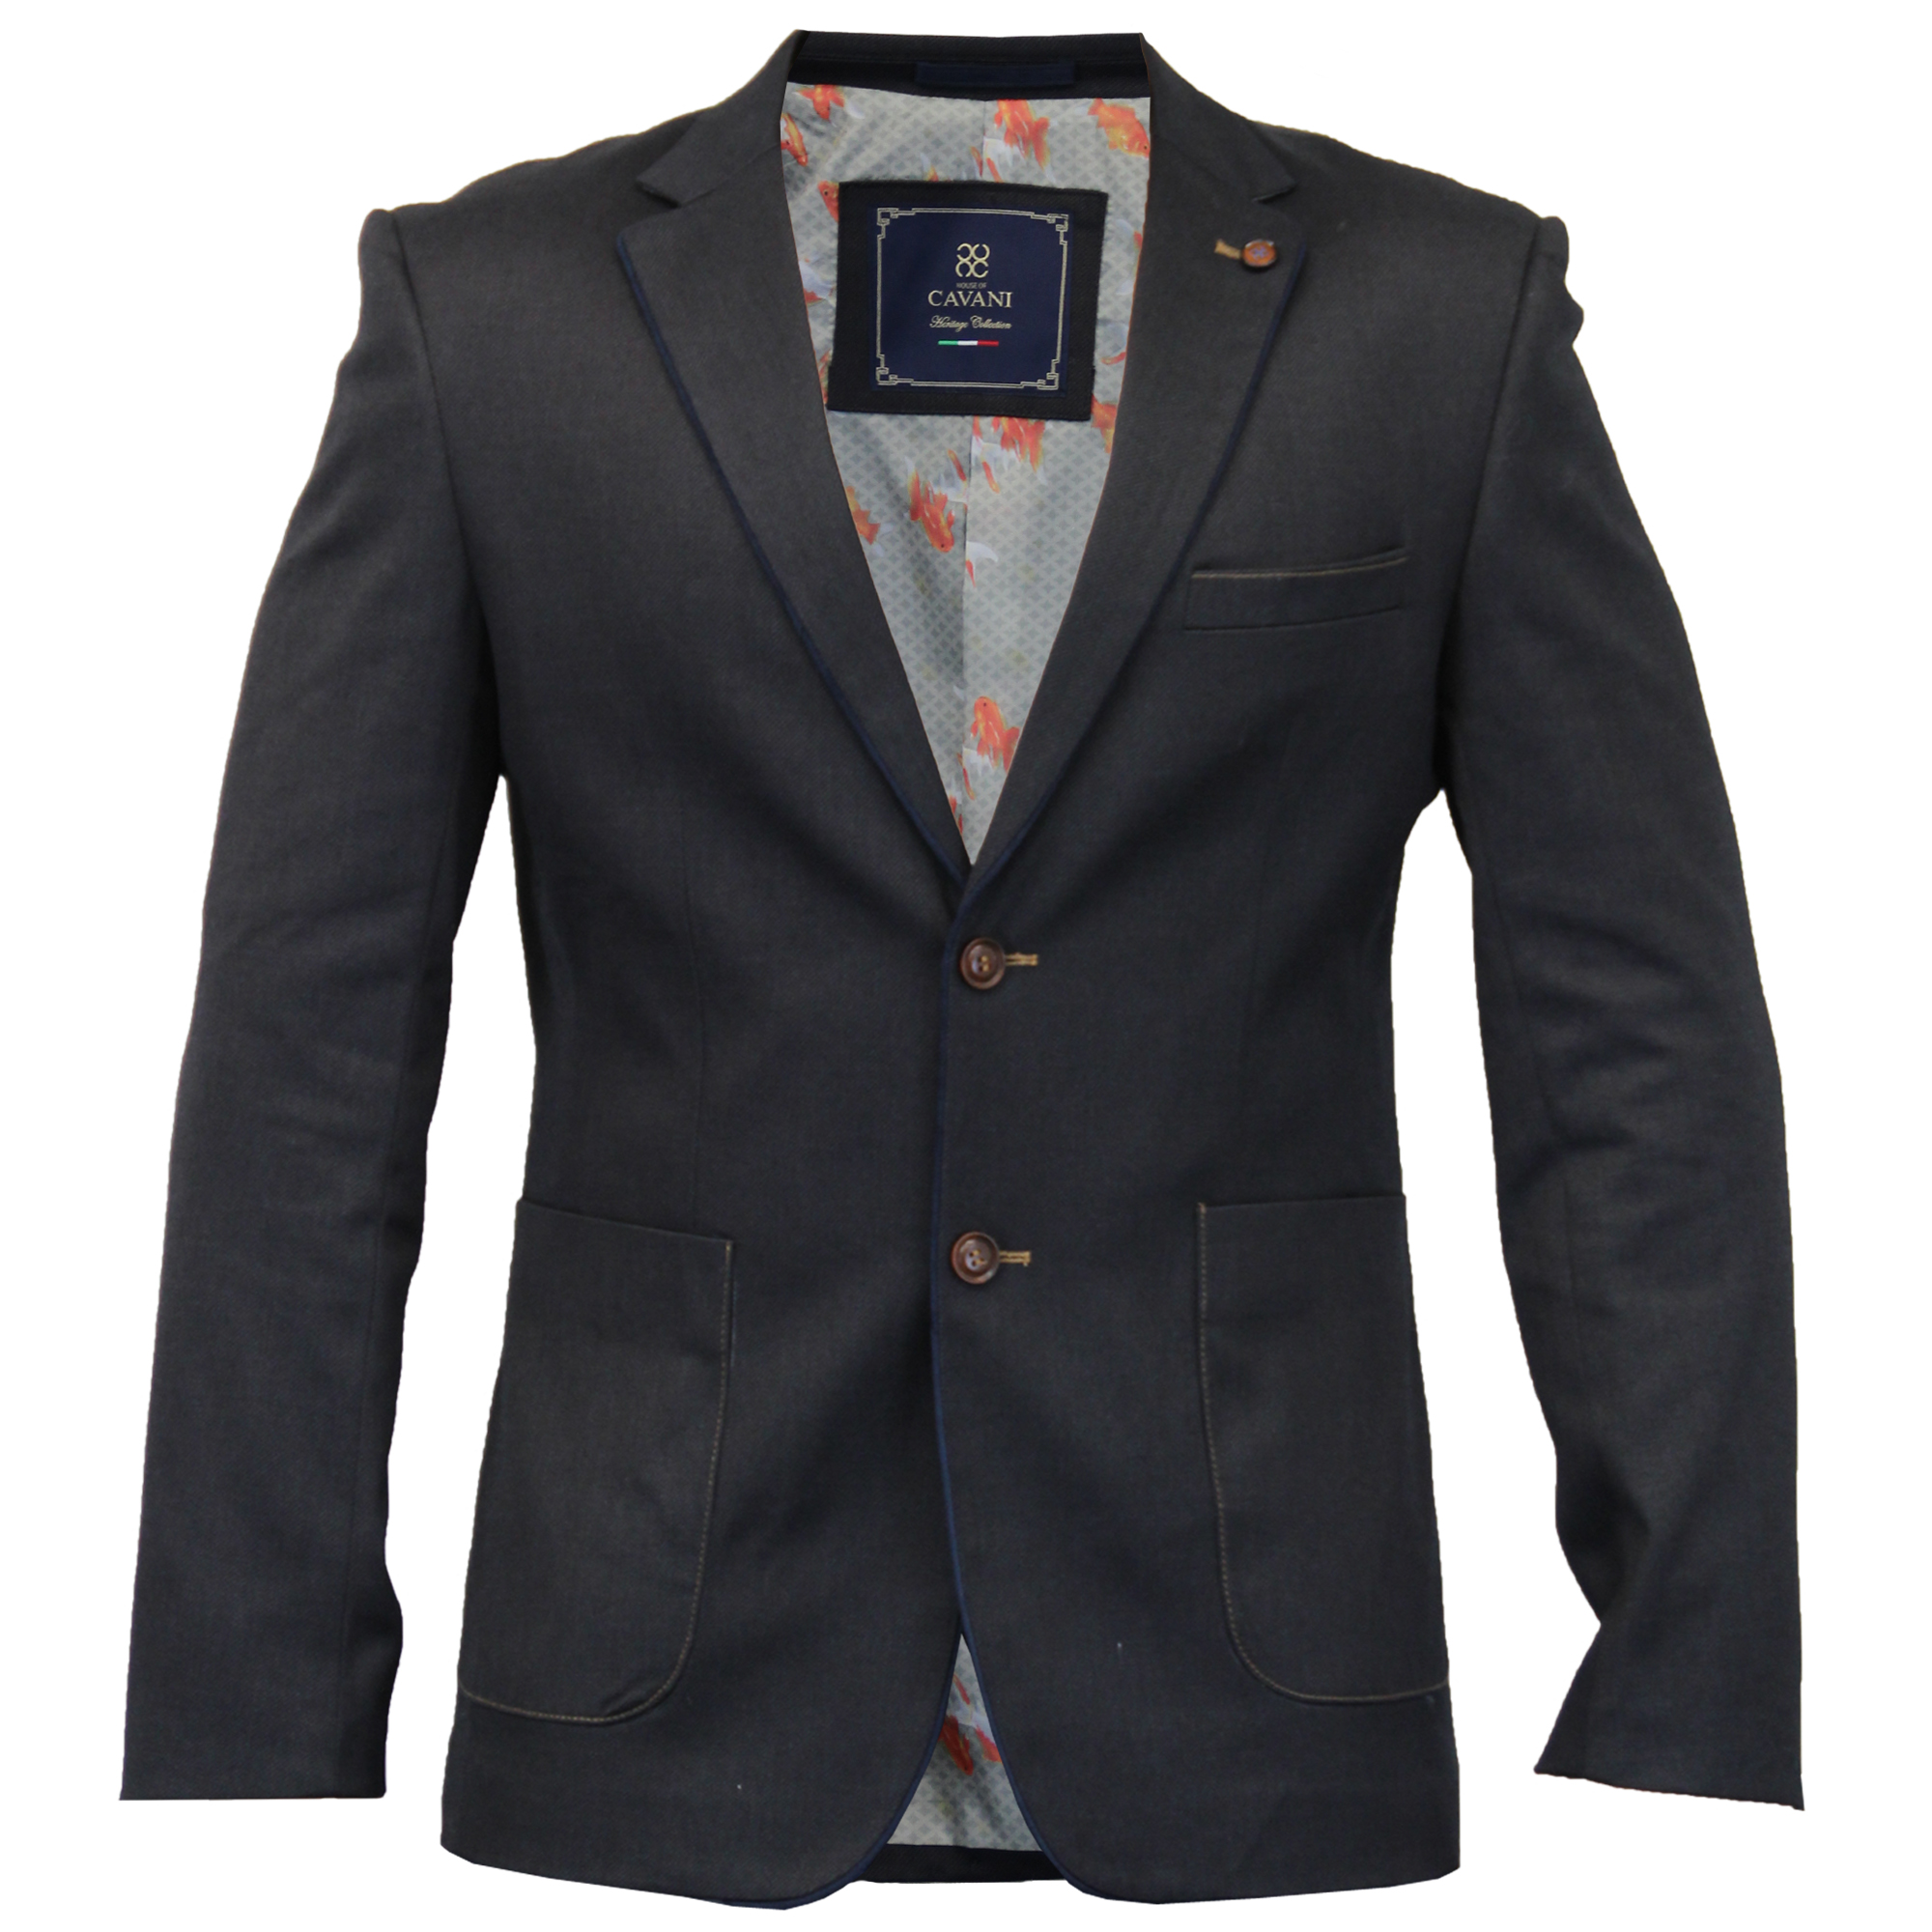 Mens Wool Mix Slim Fit Blazer Jacket By Cavani | eBay